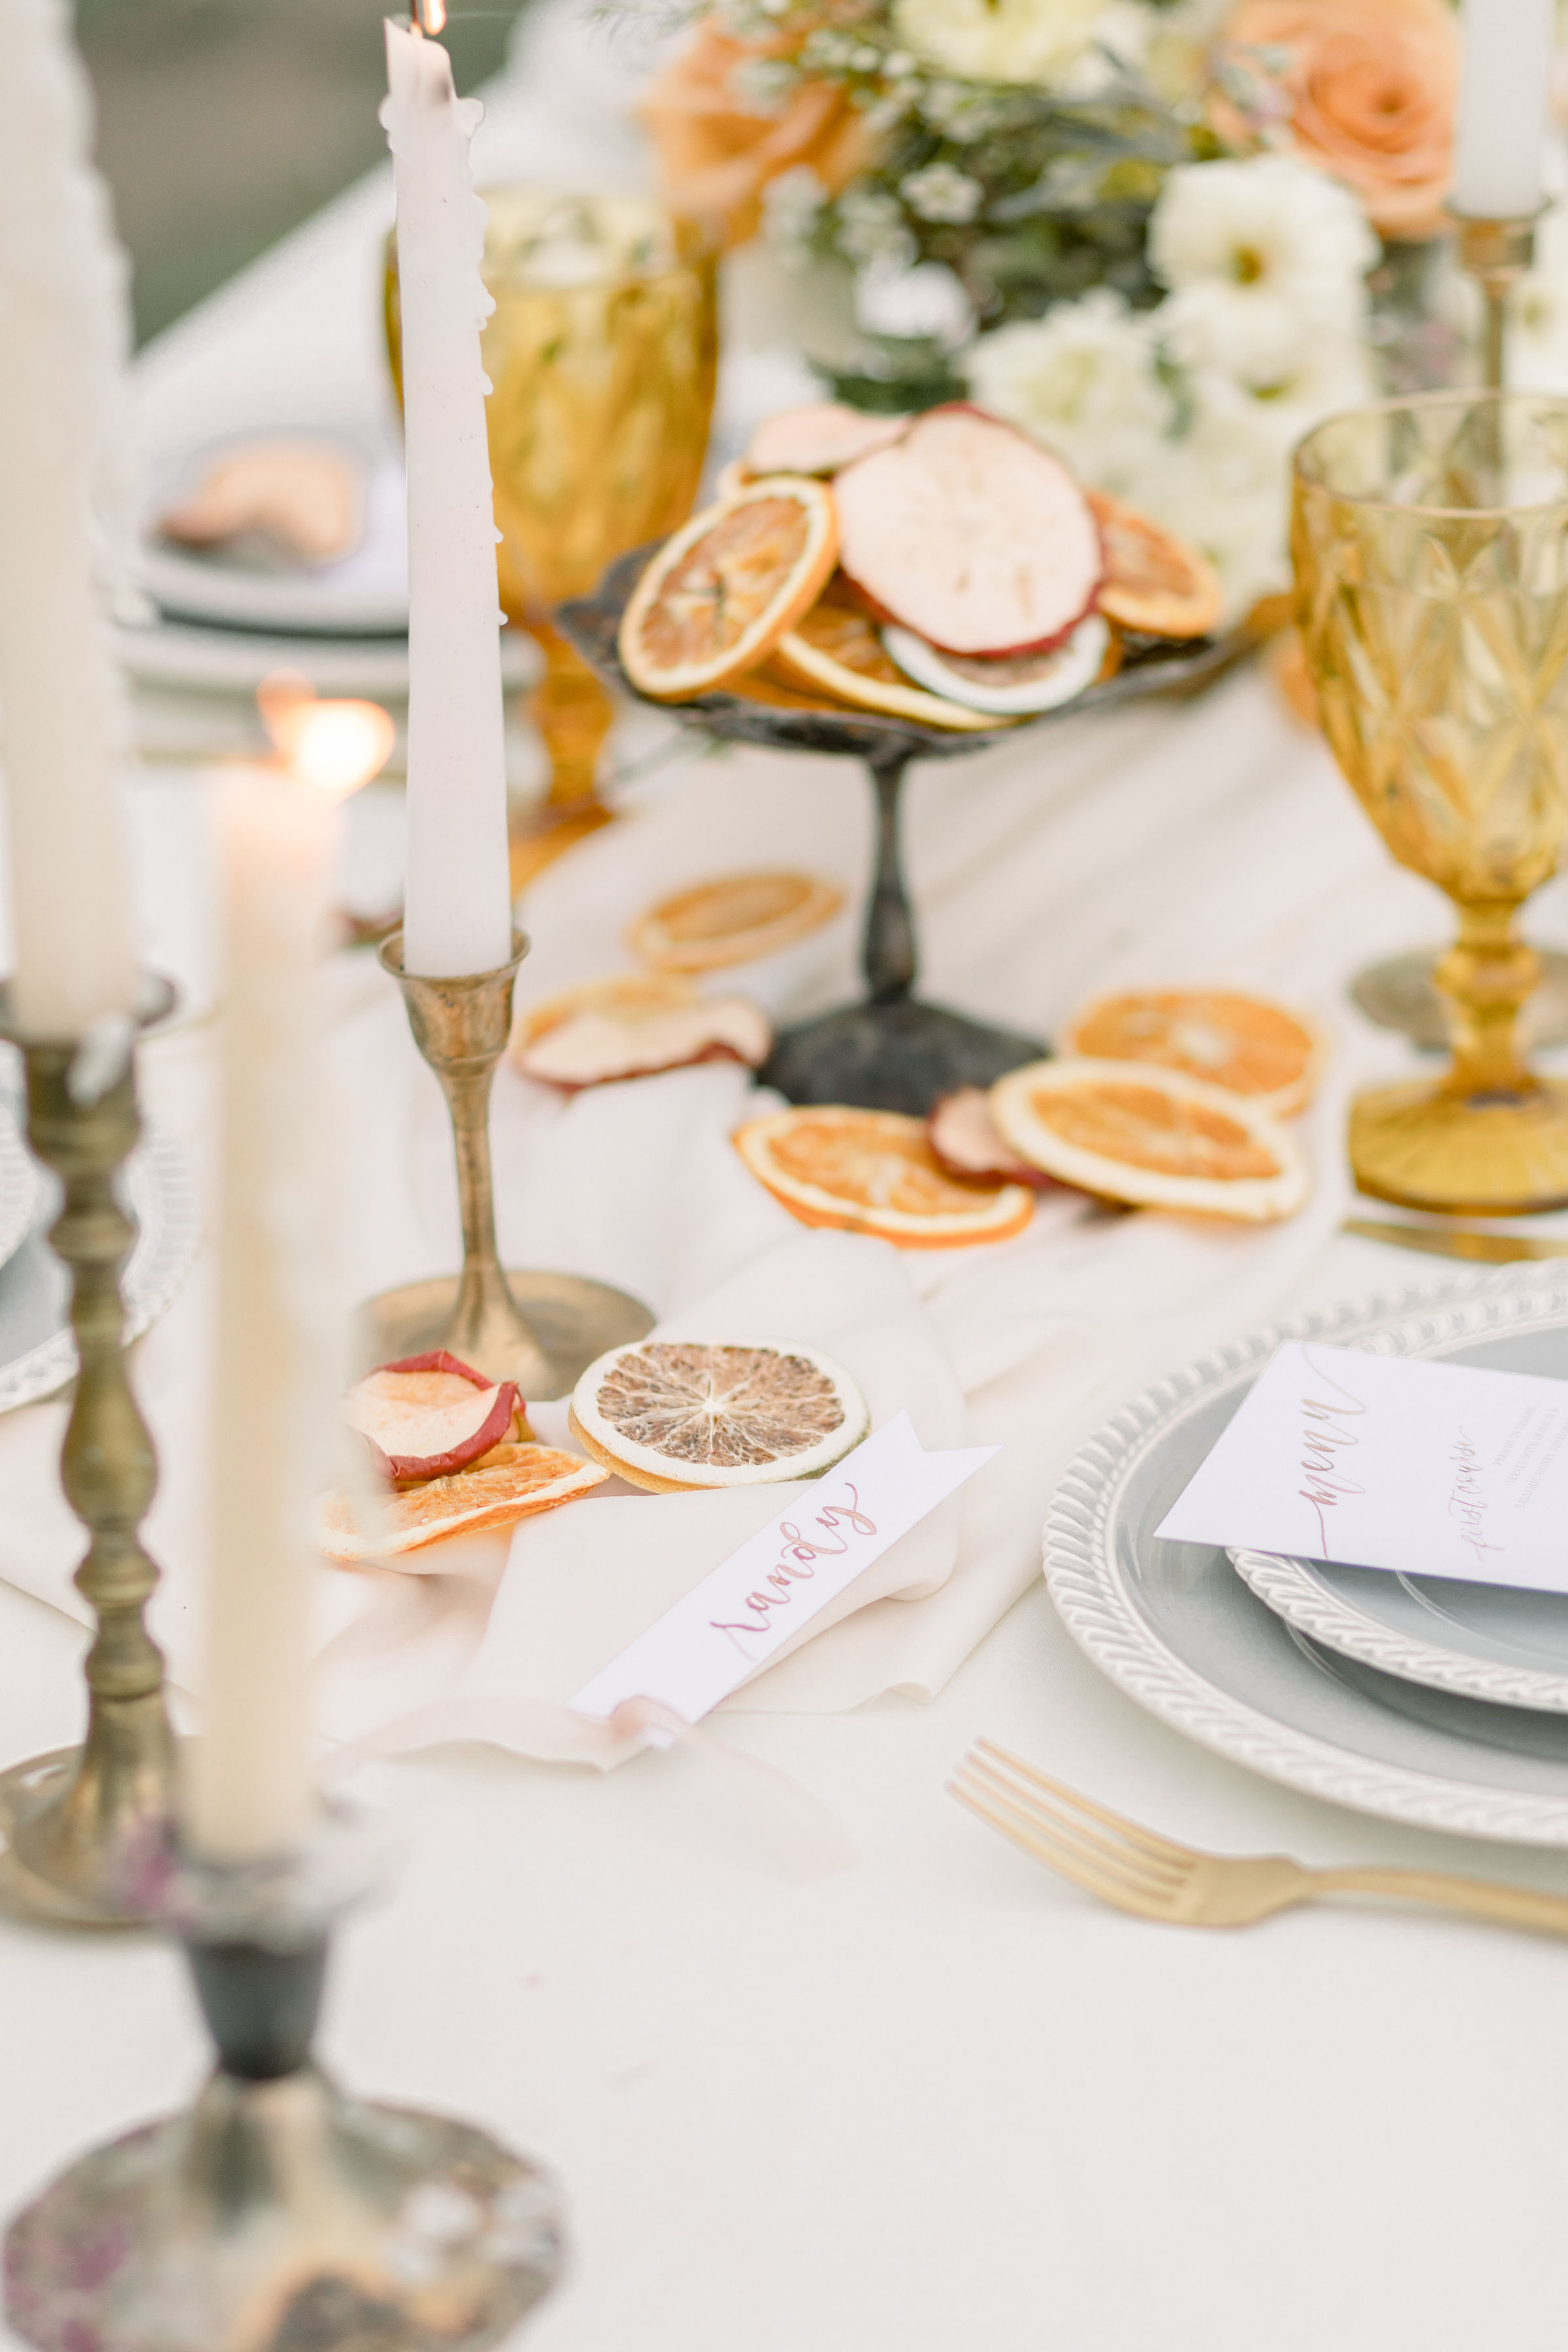 StephanieWeberPhotography-Brown Wedding Reception Tablescape – Watercolor Placecard and Menu